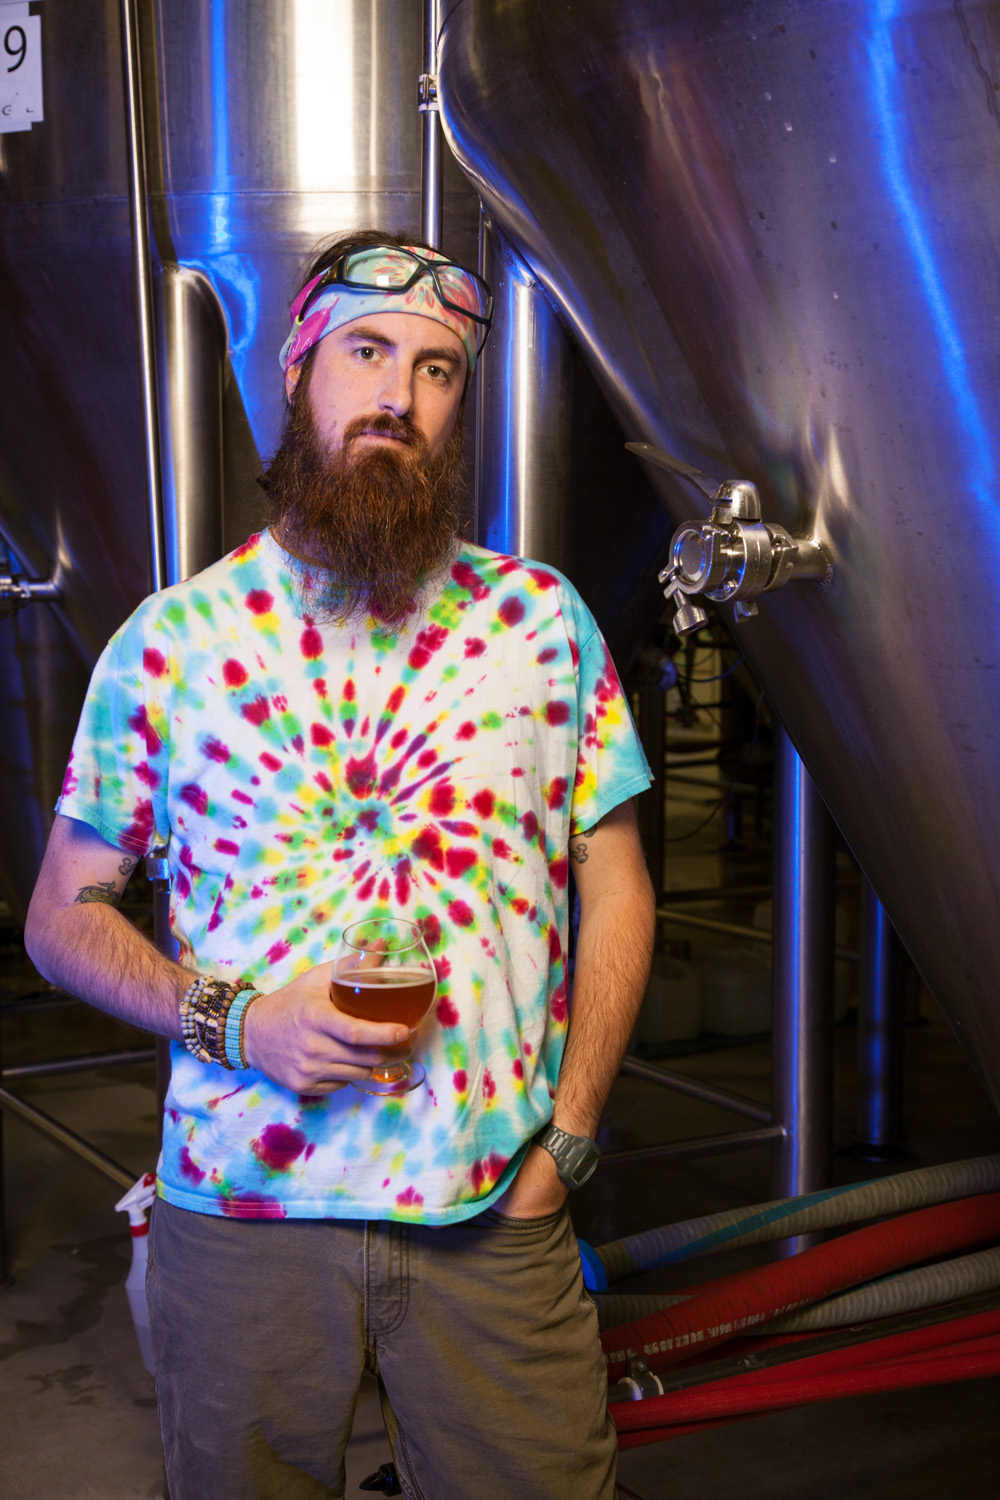 Mike Gerhart, Brewmaster at Otter Creek Brewing Co. Middlebury, VT Established in 1991